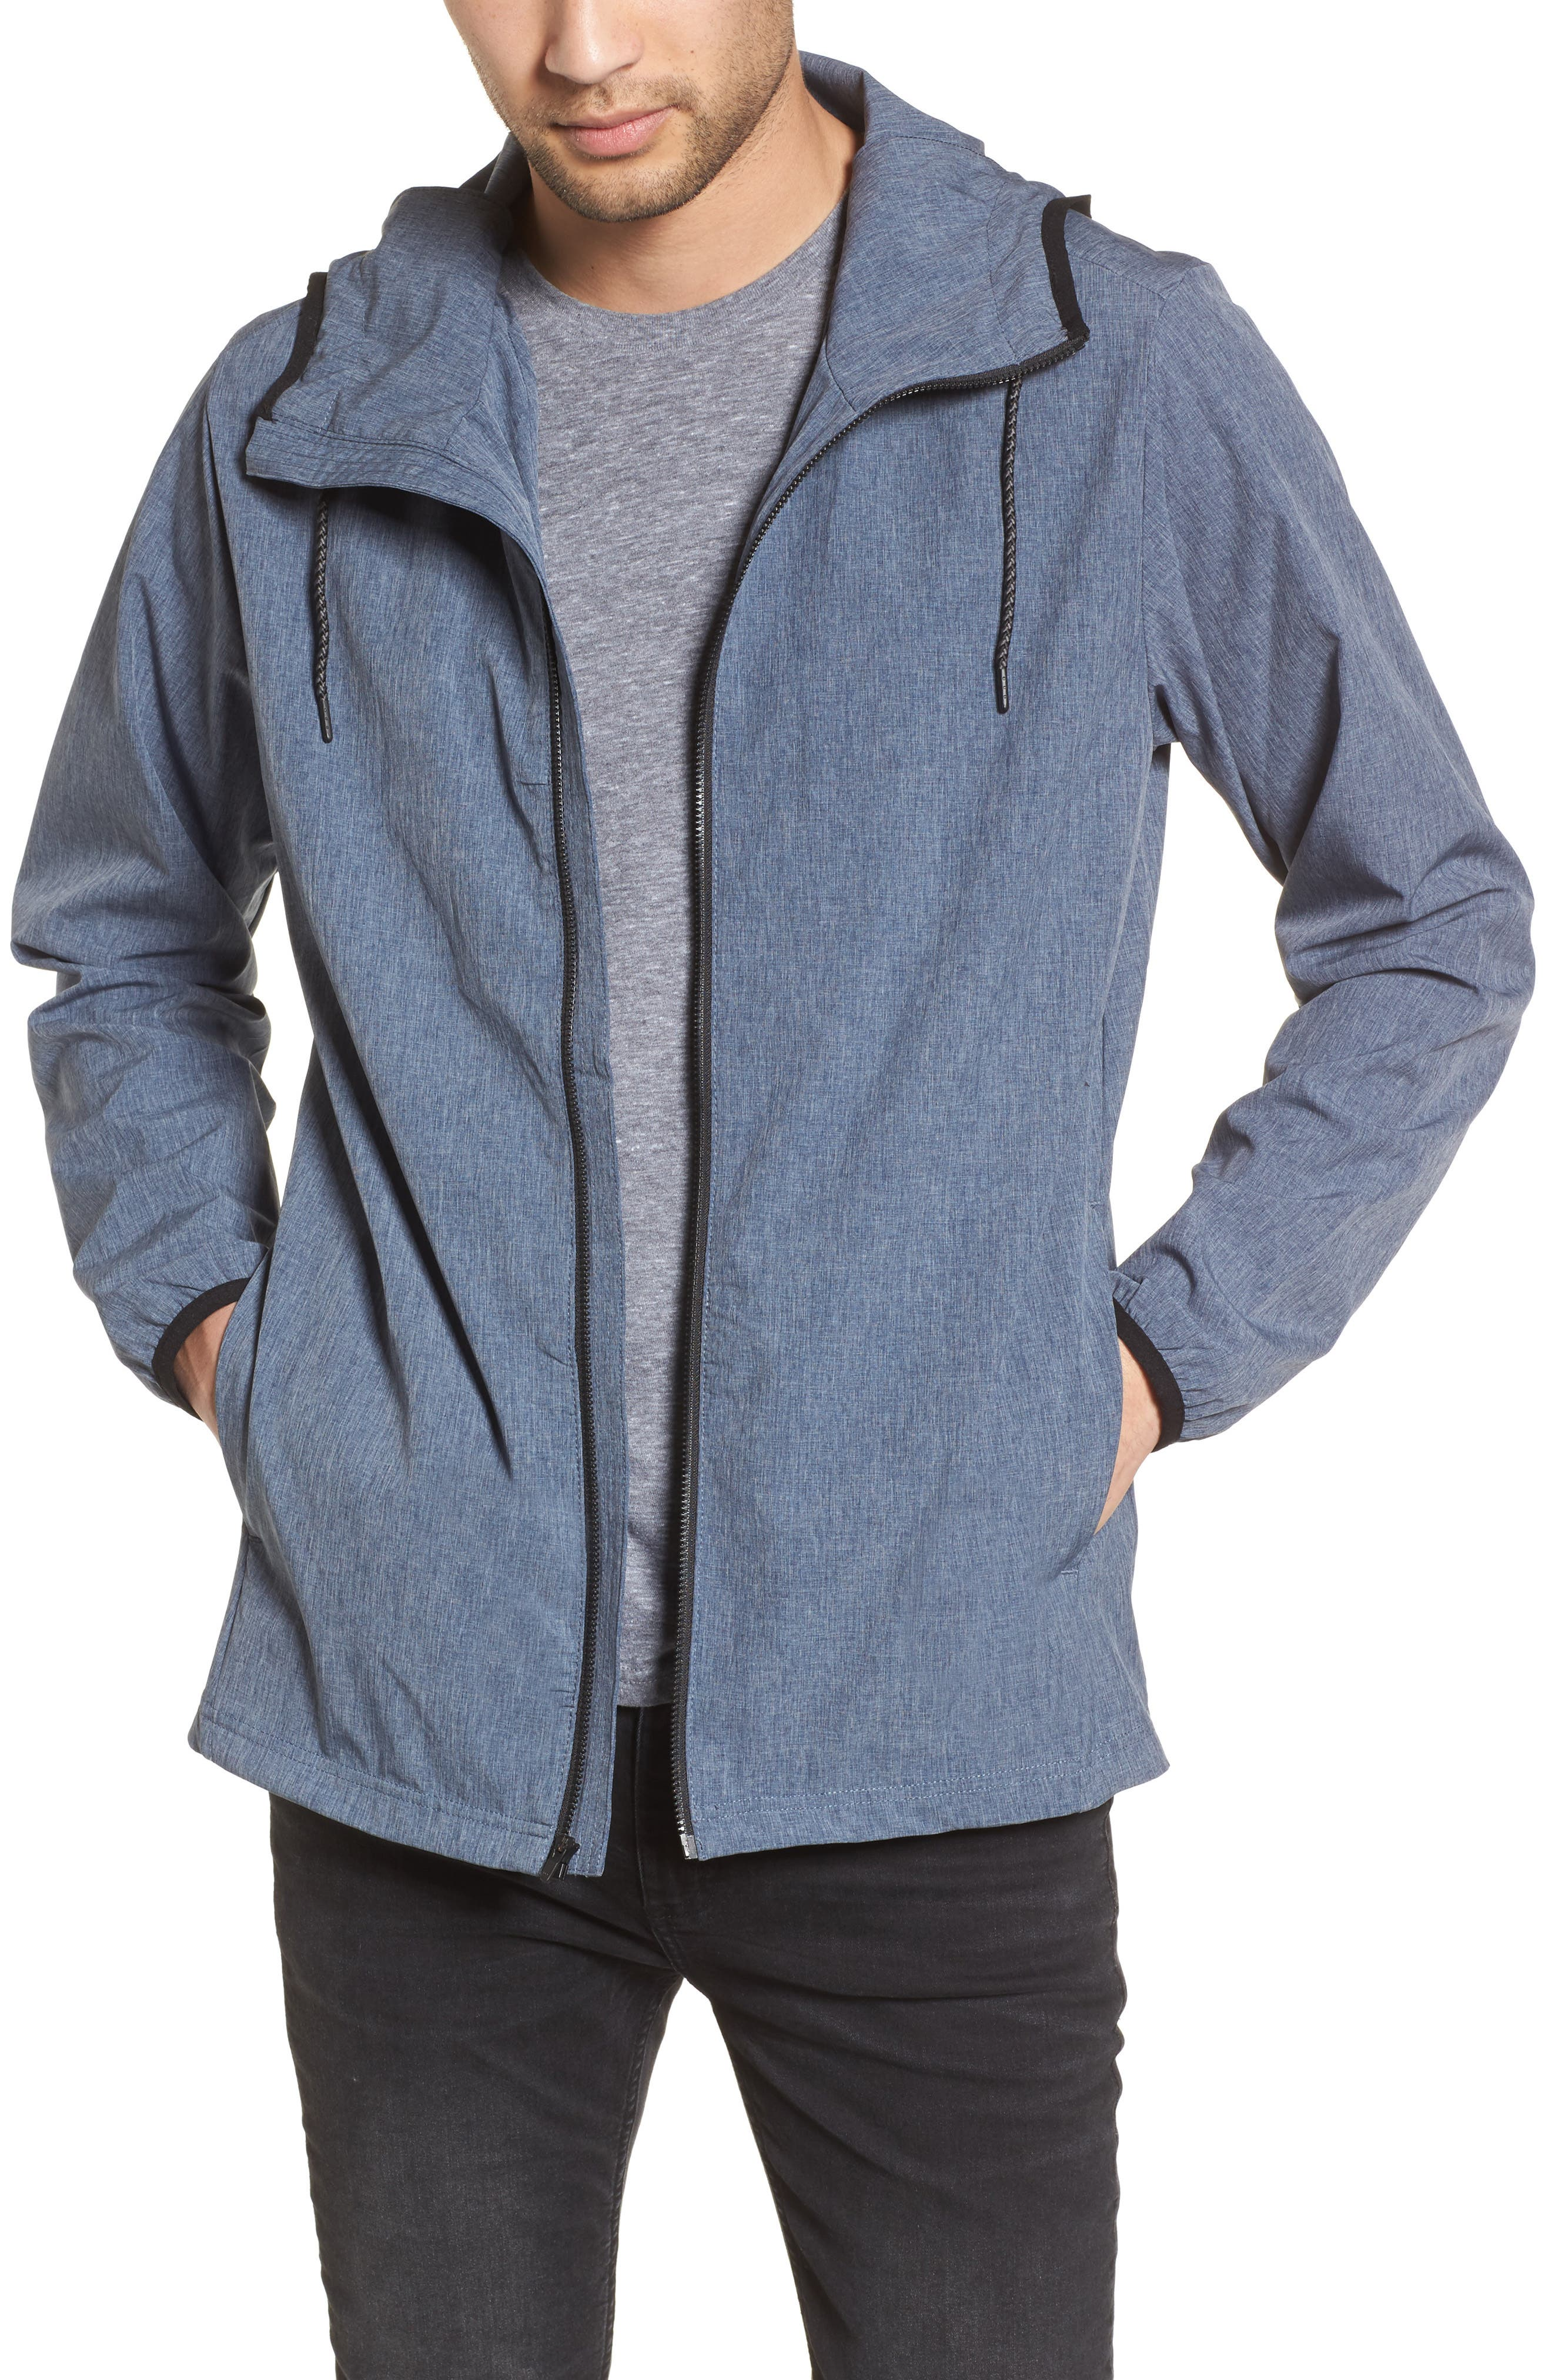 Protect Stretch 2.0 Jacket,                         Main,                         color, Obsidian